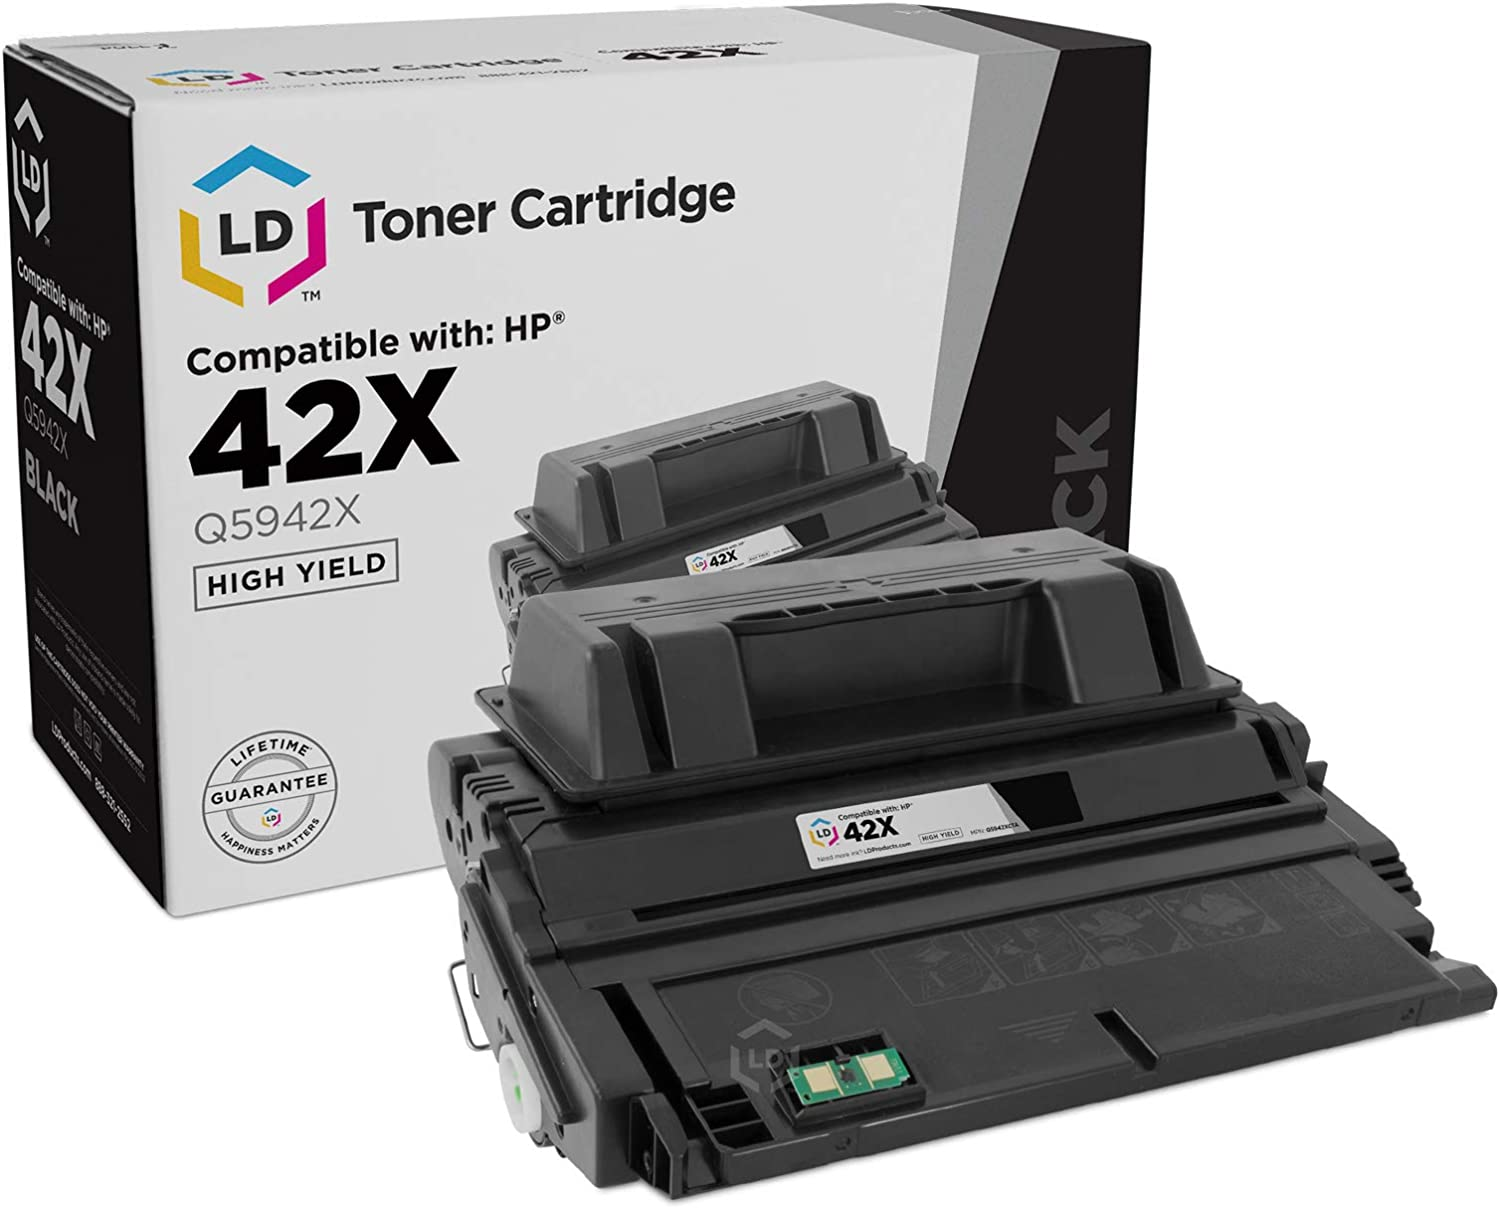 LD Compatible Toner Cartridge Replacement for HP 42X Q5942X High Yield (Black)